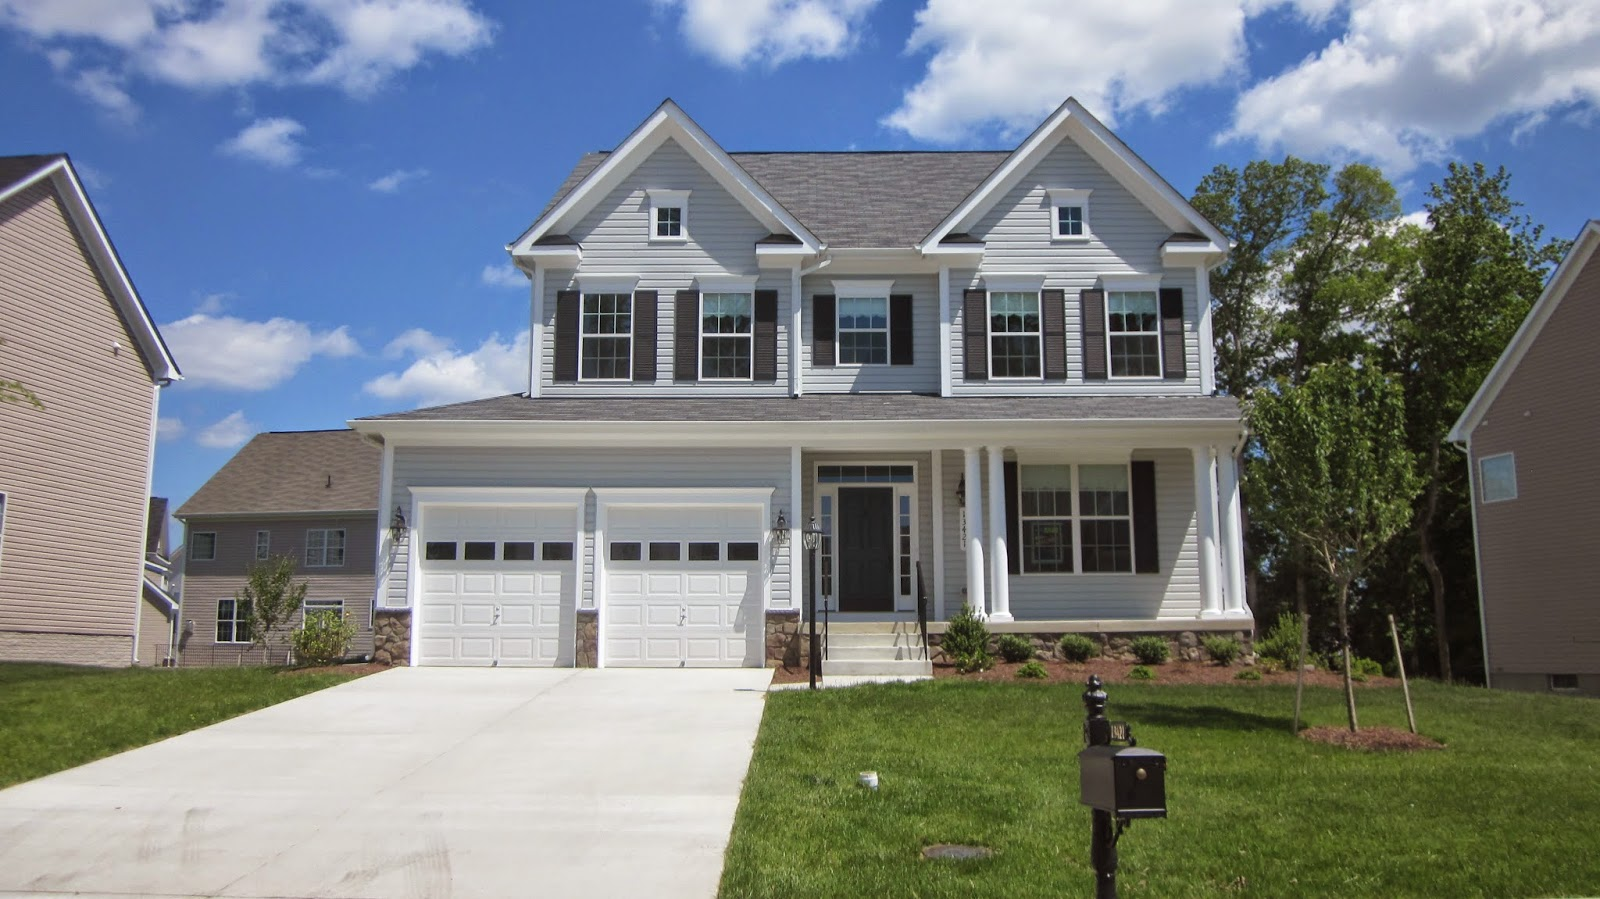 Thomas mill woodbridge va homes for sale for Builders in va